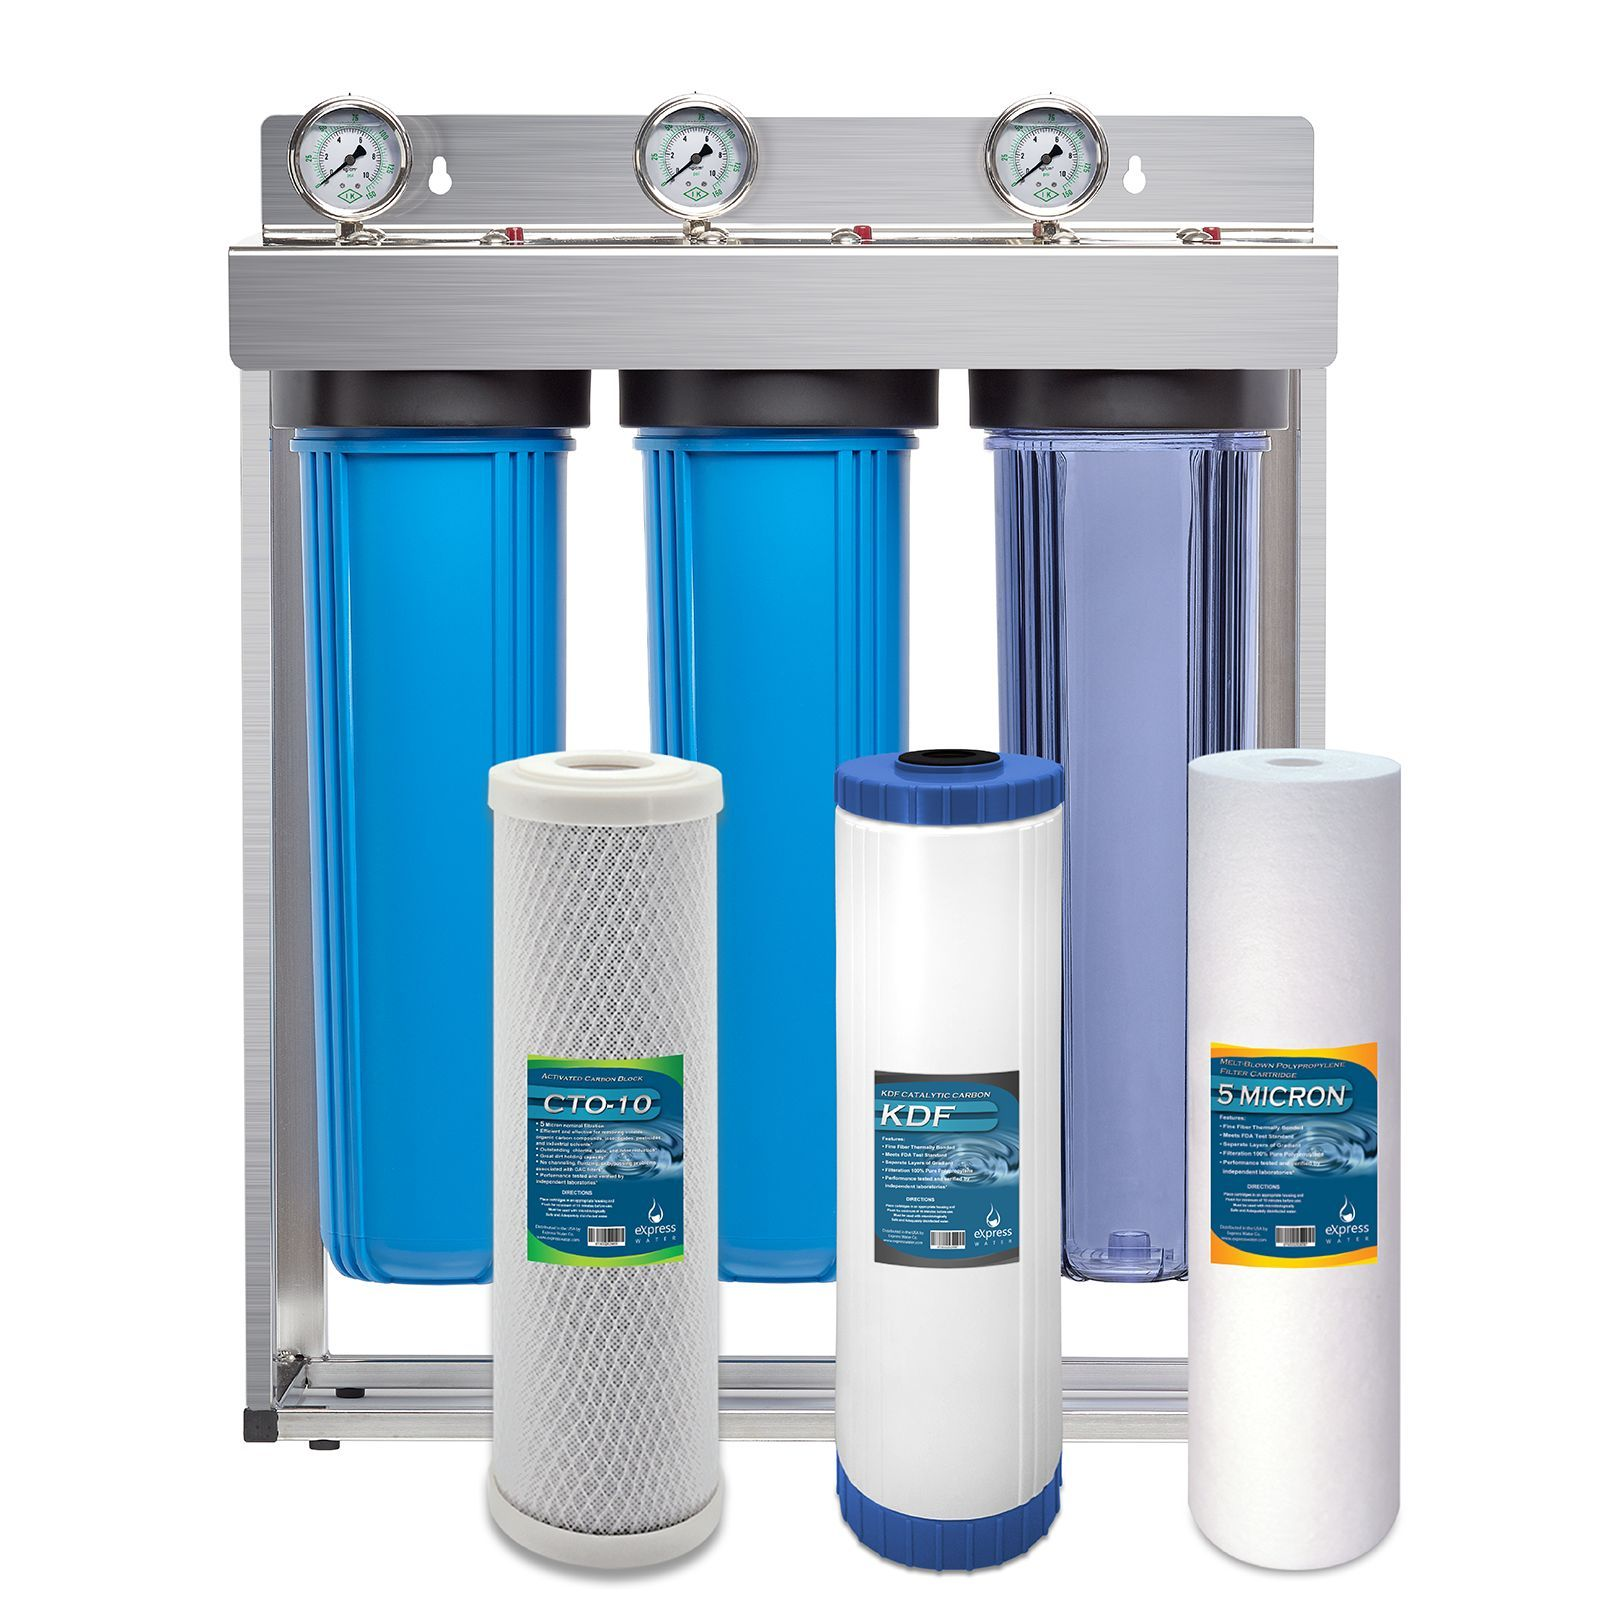 Beyond Water Pitchers 4 New Ways To Filter Tap Water Countertop Water Filter Water Filter Review Water Filter